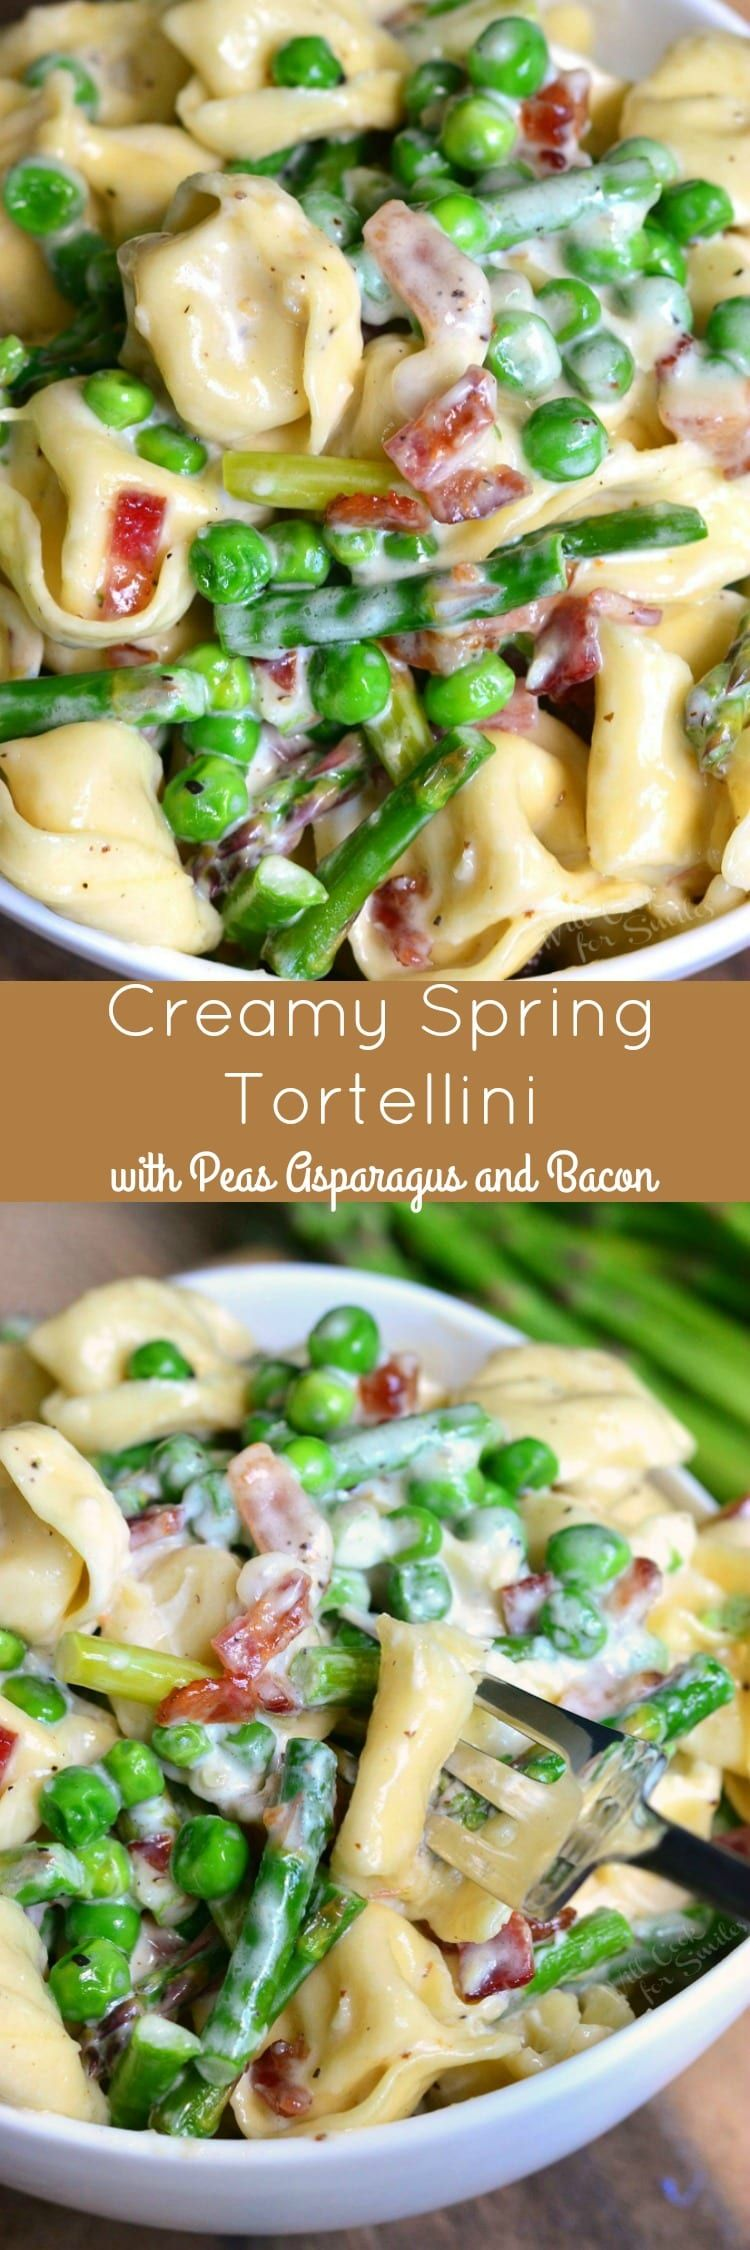 Creamy Spring Tortellini with Peas Asparagus and Bacon. Delicious creamy tortellini dish made comfo